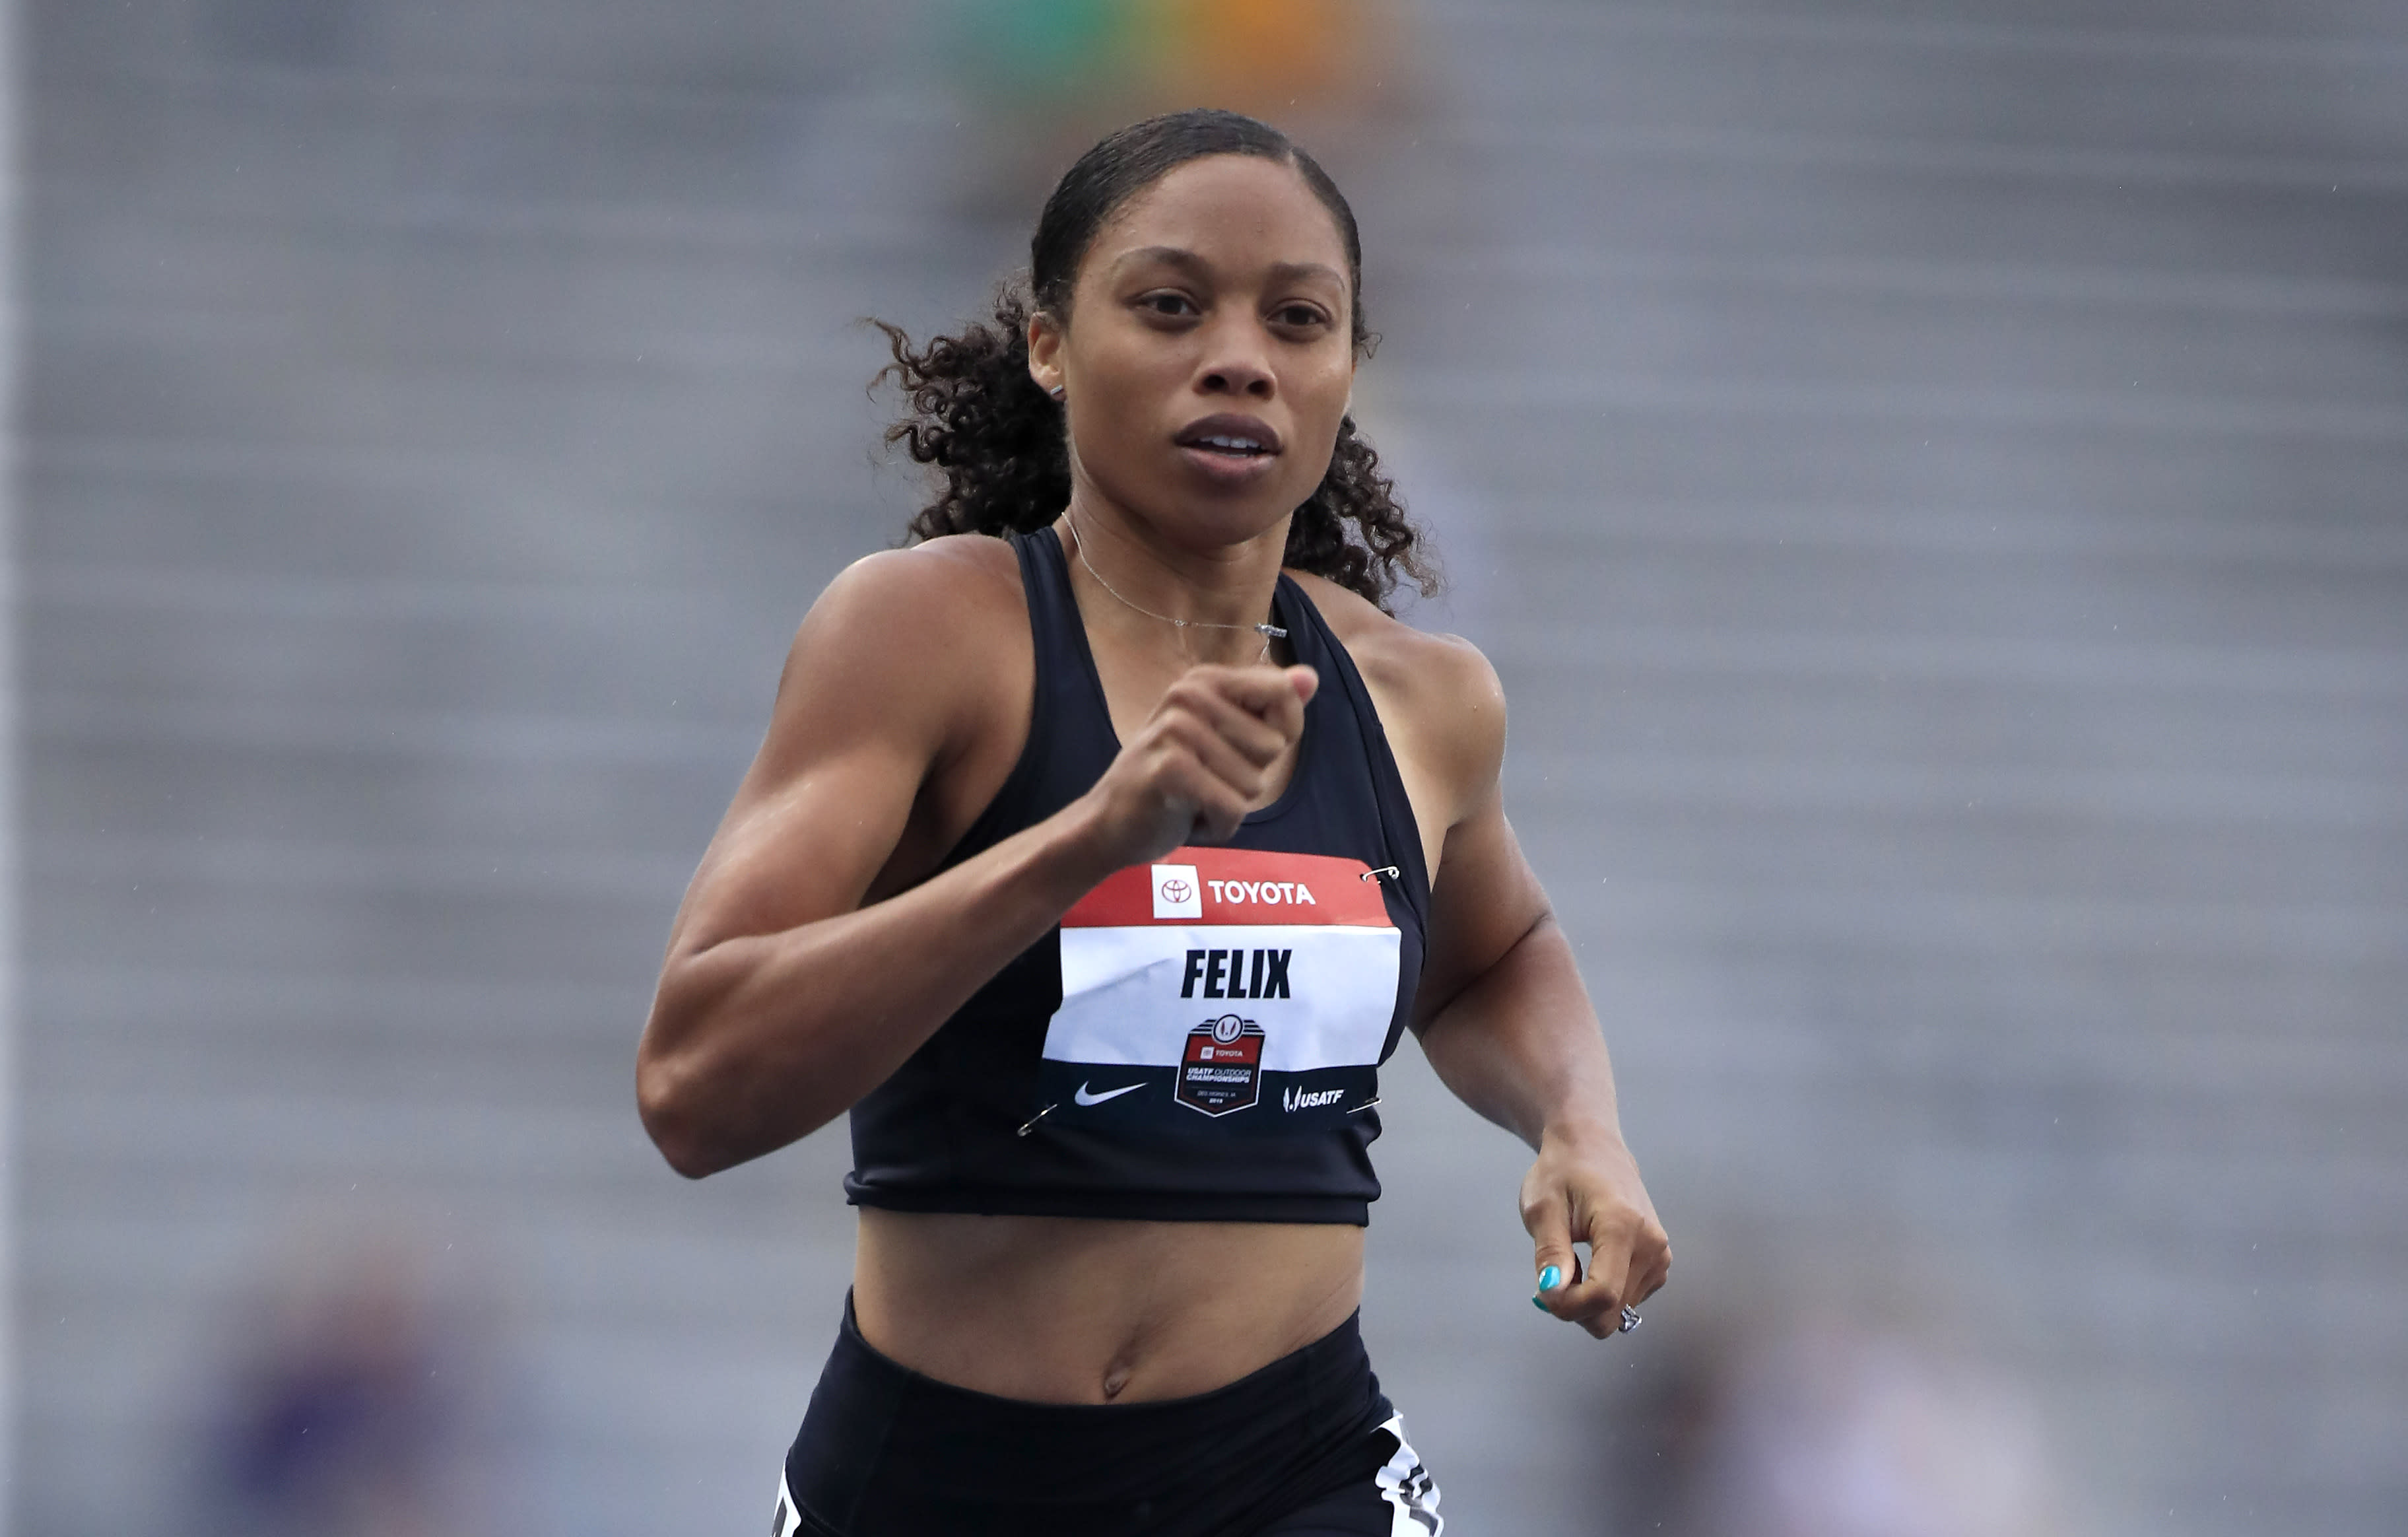 After Nike fallout, Allyson Felix changes sponsorship game